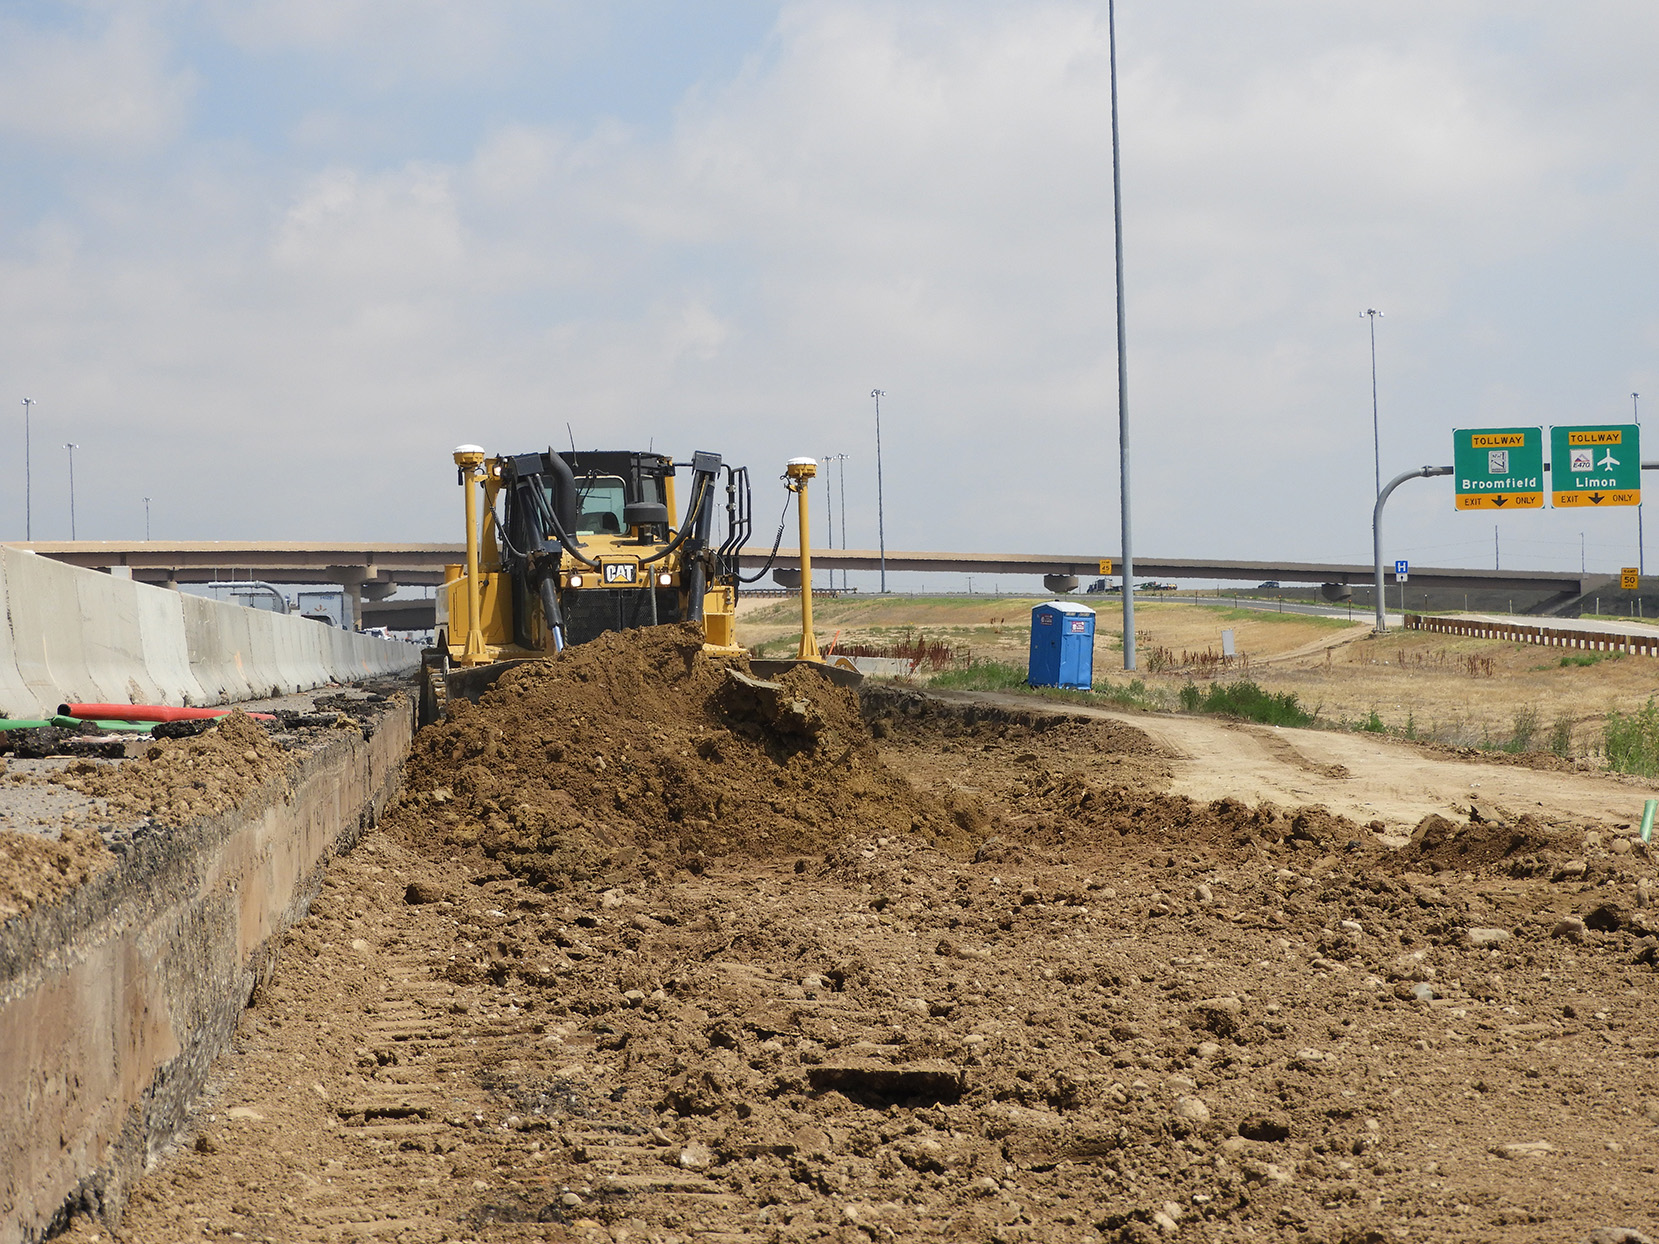 Ground prep for asphalt south of the Northwest Parkway/E-470 ramps on northbound I-25